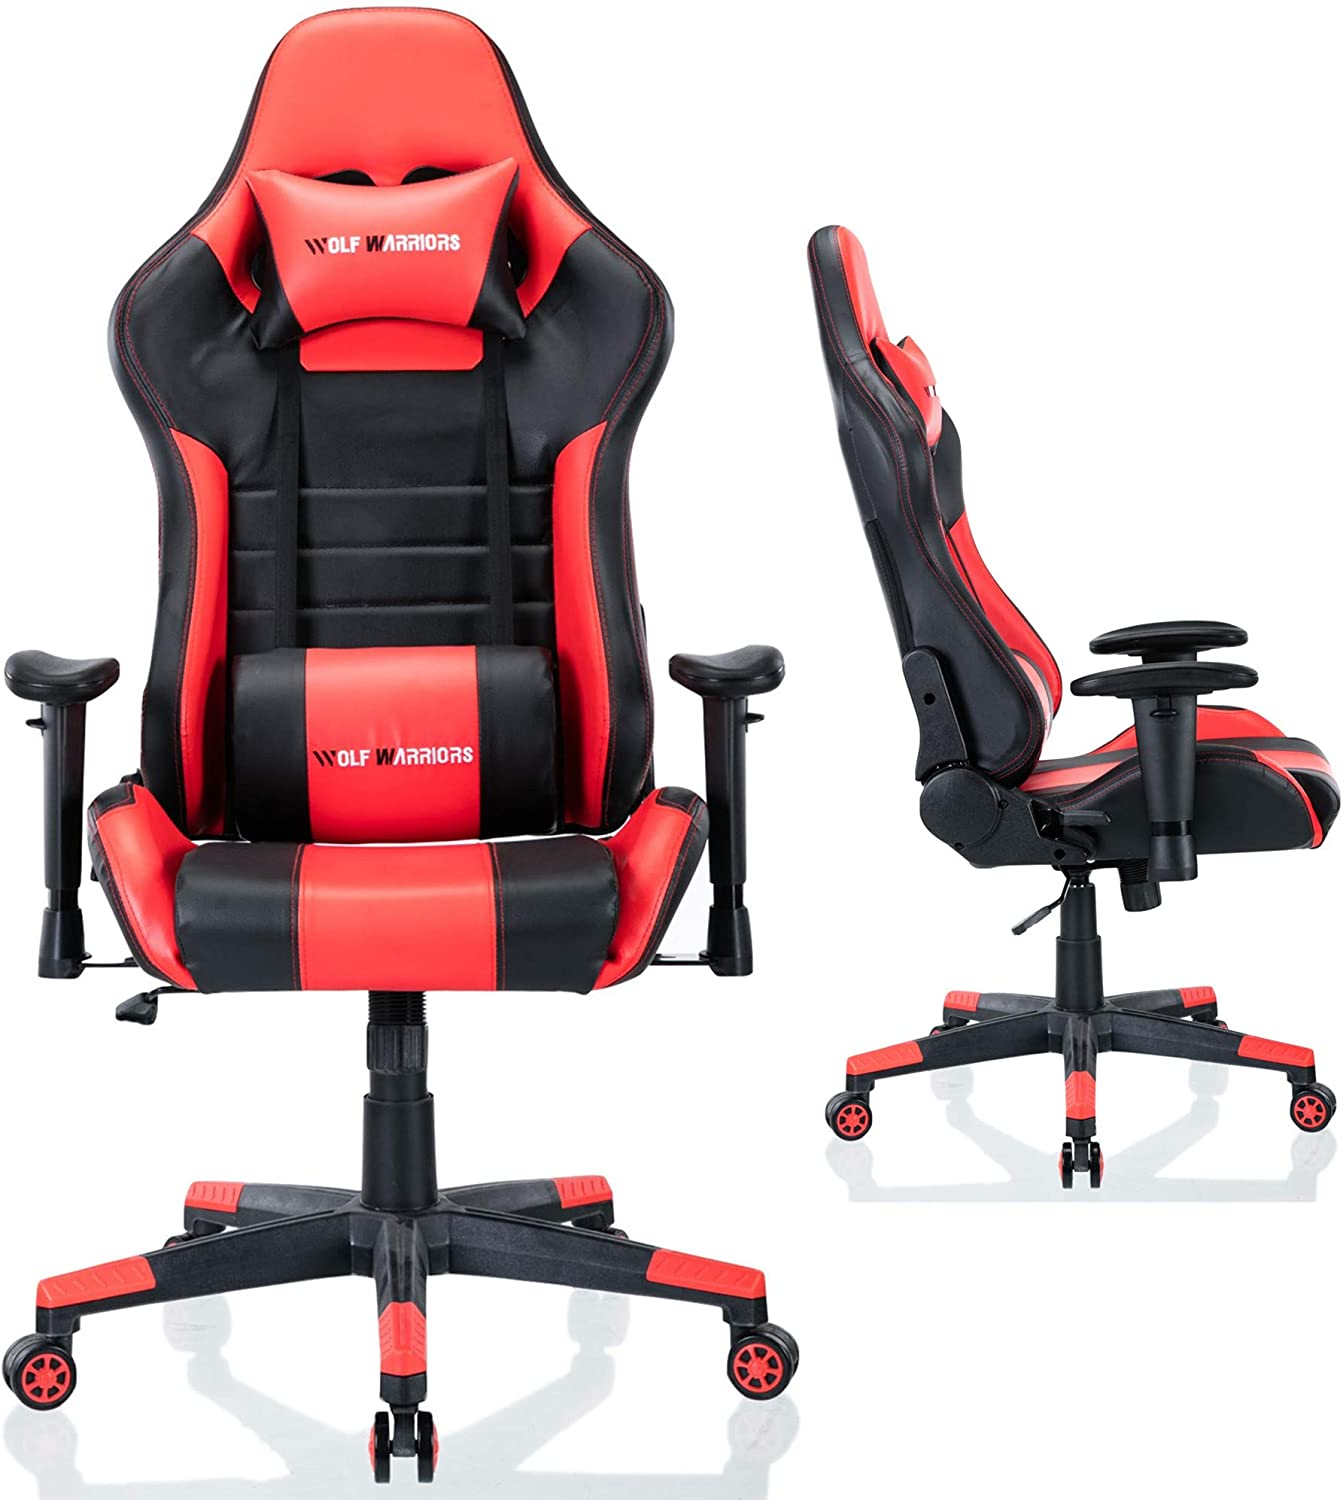 Memory Foam Computer Gaming Chair BIFMA Certified Reclining Gaming Chair Racing Entertainment Video Game Chair with Removable Headrest and High Back Cushion Tilt E-Sports Chair Without Footrest, Red//Black